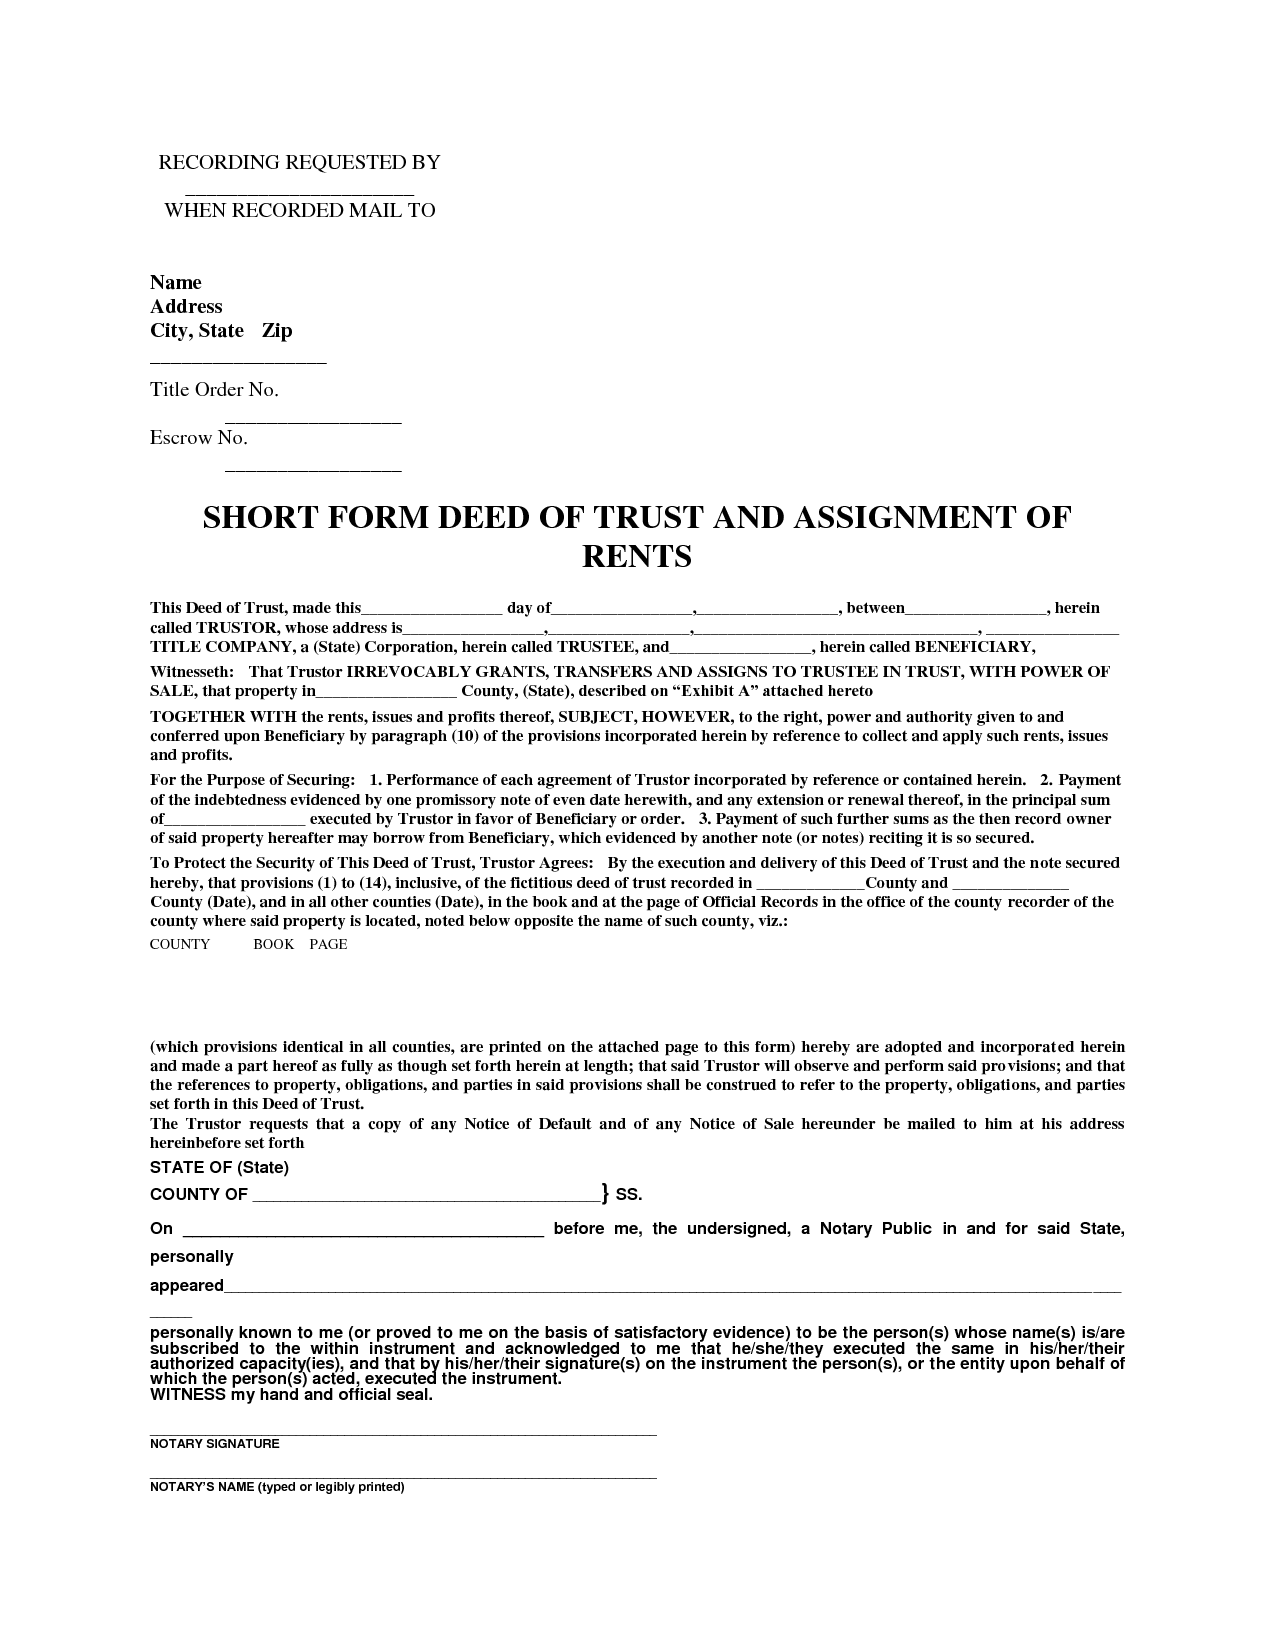 short form deed of trust  u0026 assignment of rents by